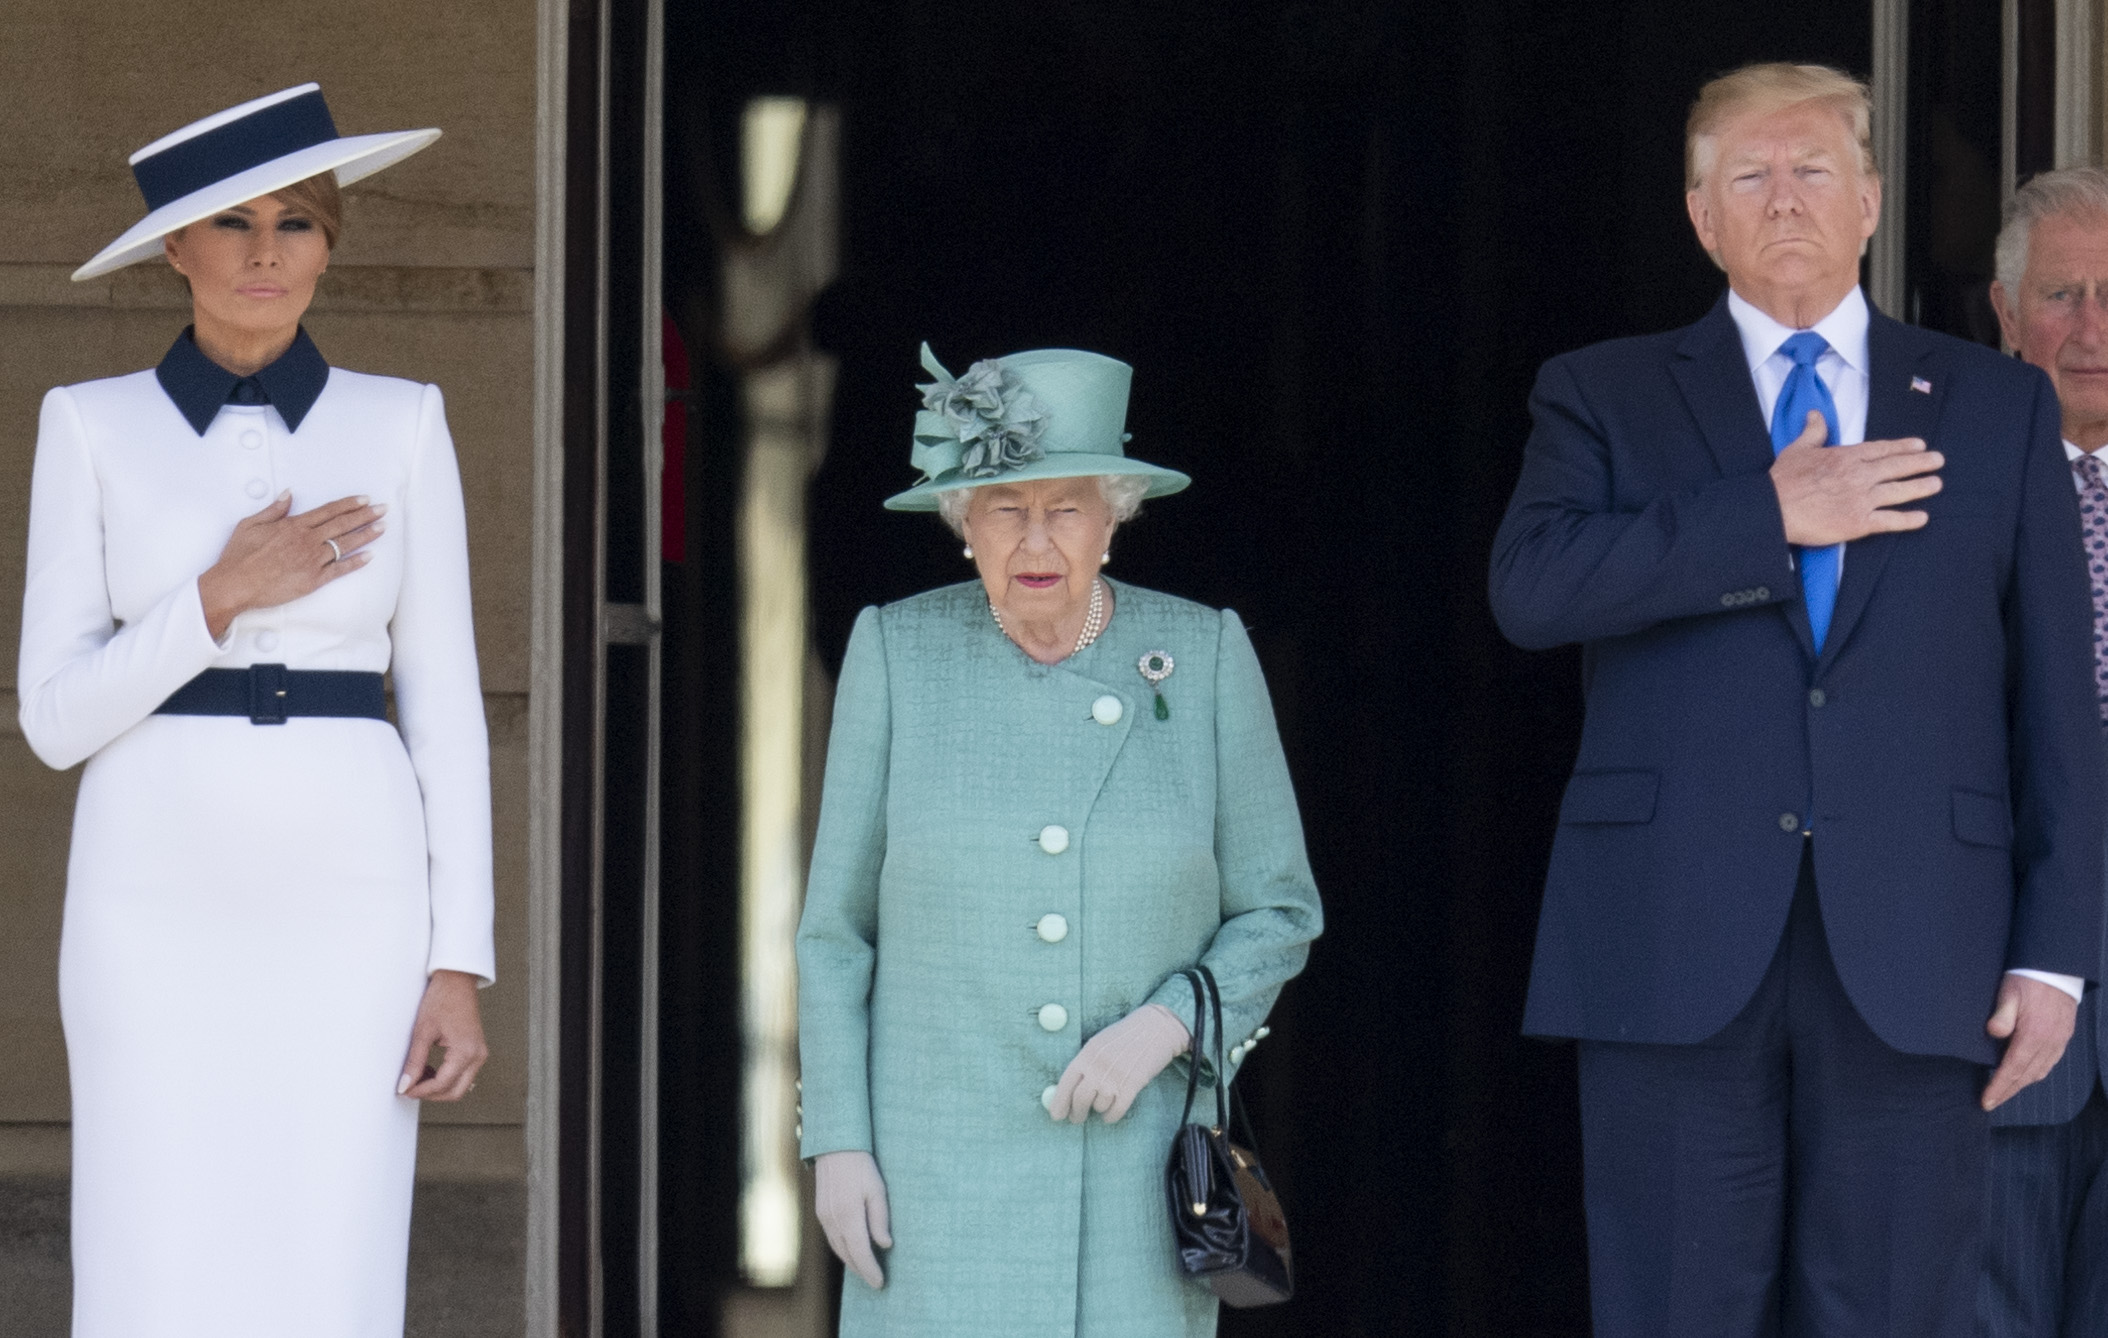 LONDON, ENGLAND - JUNE 03: Queen Elizabeth II with U.S. President Donald Trump and First Lady Melania Trump during the Ceremonial Welcome in the Buckingham Palace Garden on June 3, 2019 in London, England. (Photo by Mark Cuthbert/UK Press via Getty Images)